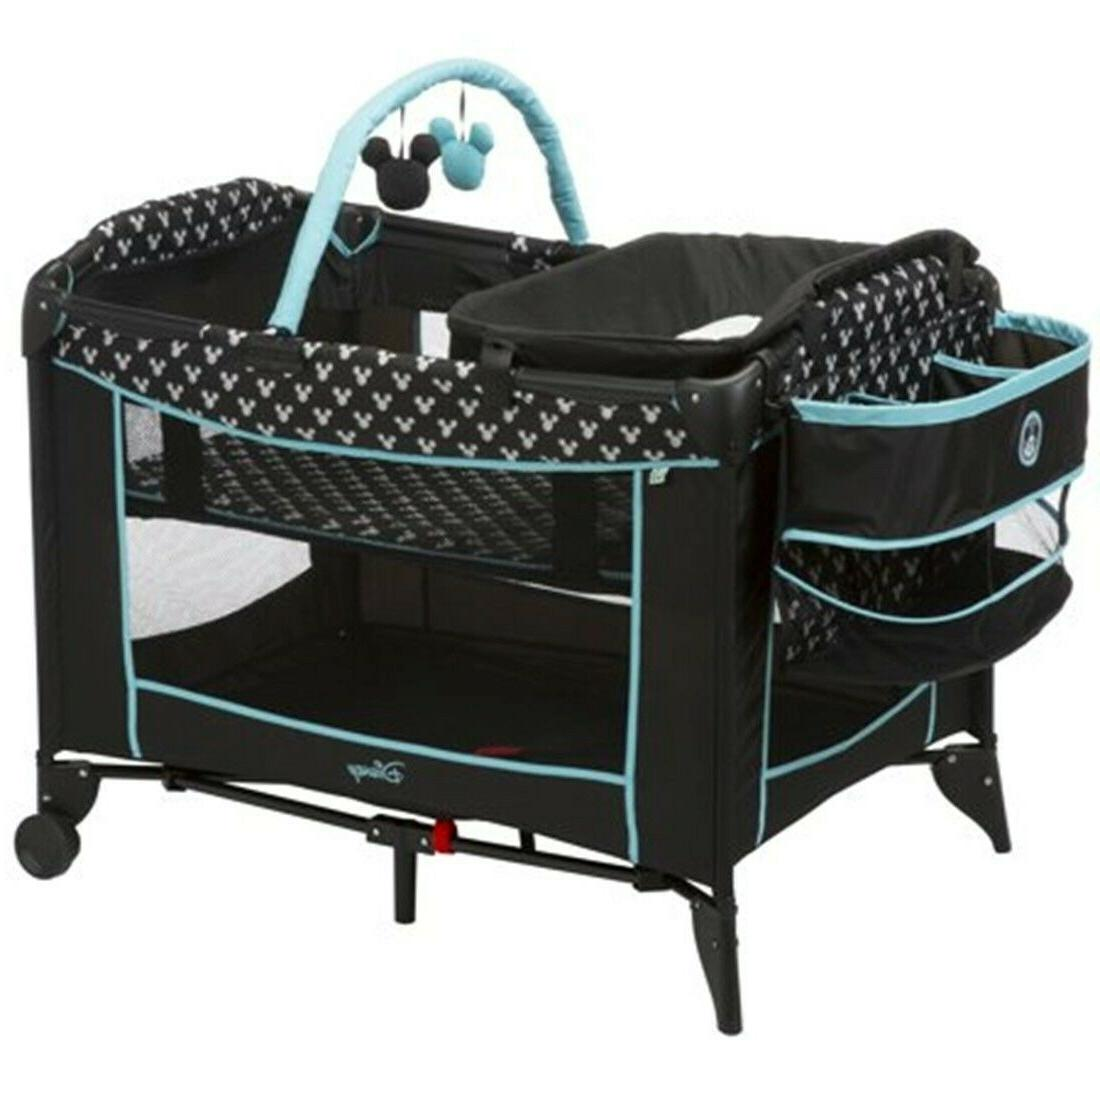 Disney Baby System and Playard Combo